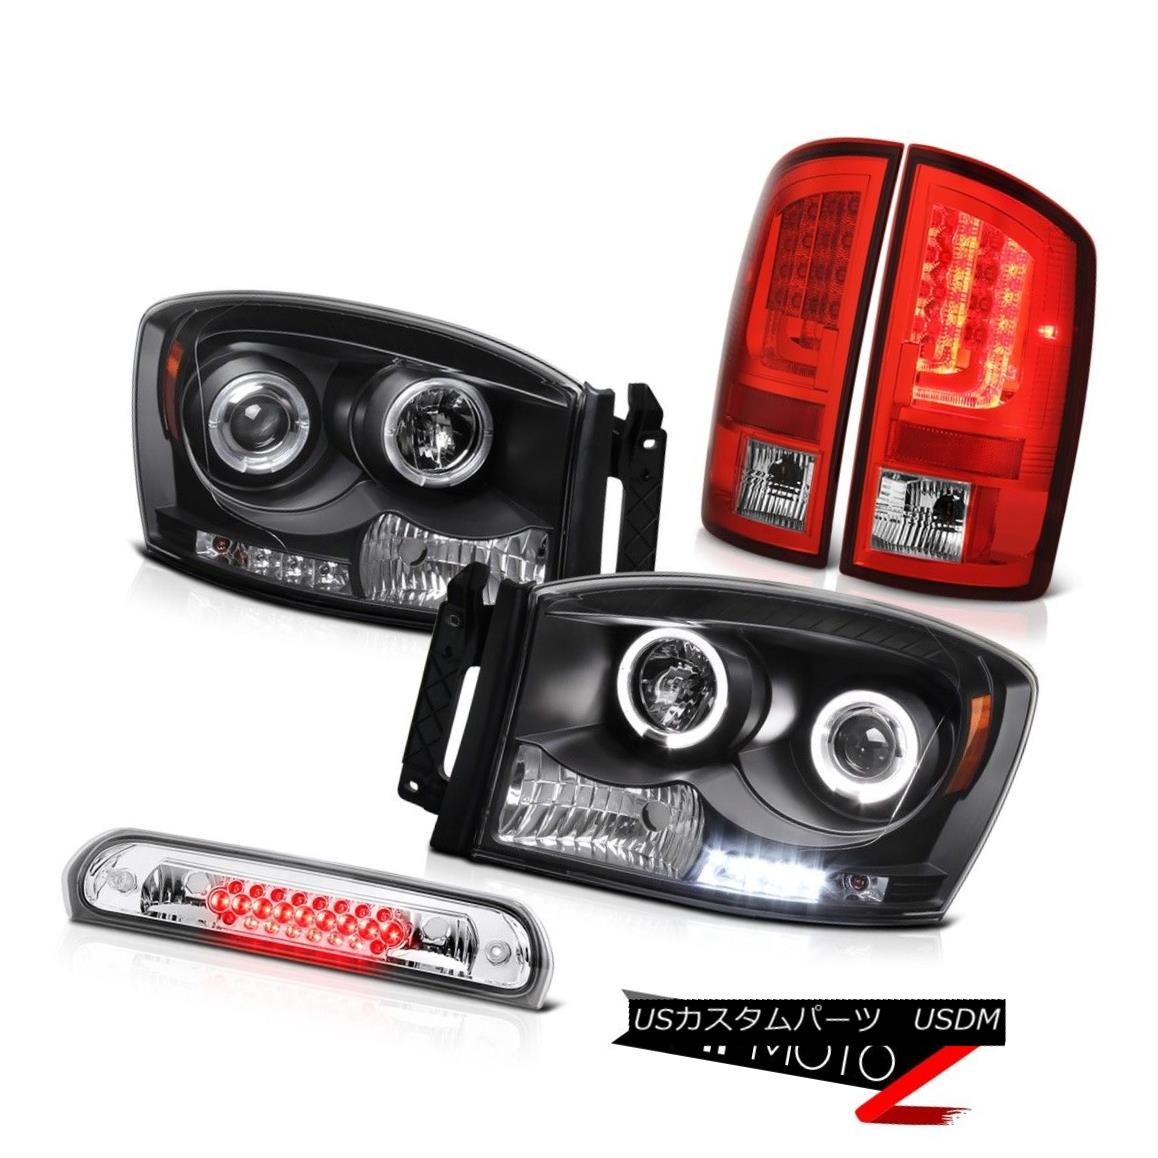 テールライト 2006 Ram 1500 Rosso Red Rear Brake Lamps Headlamps High STop Lamp